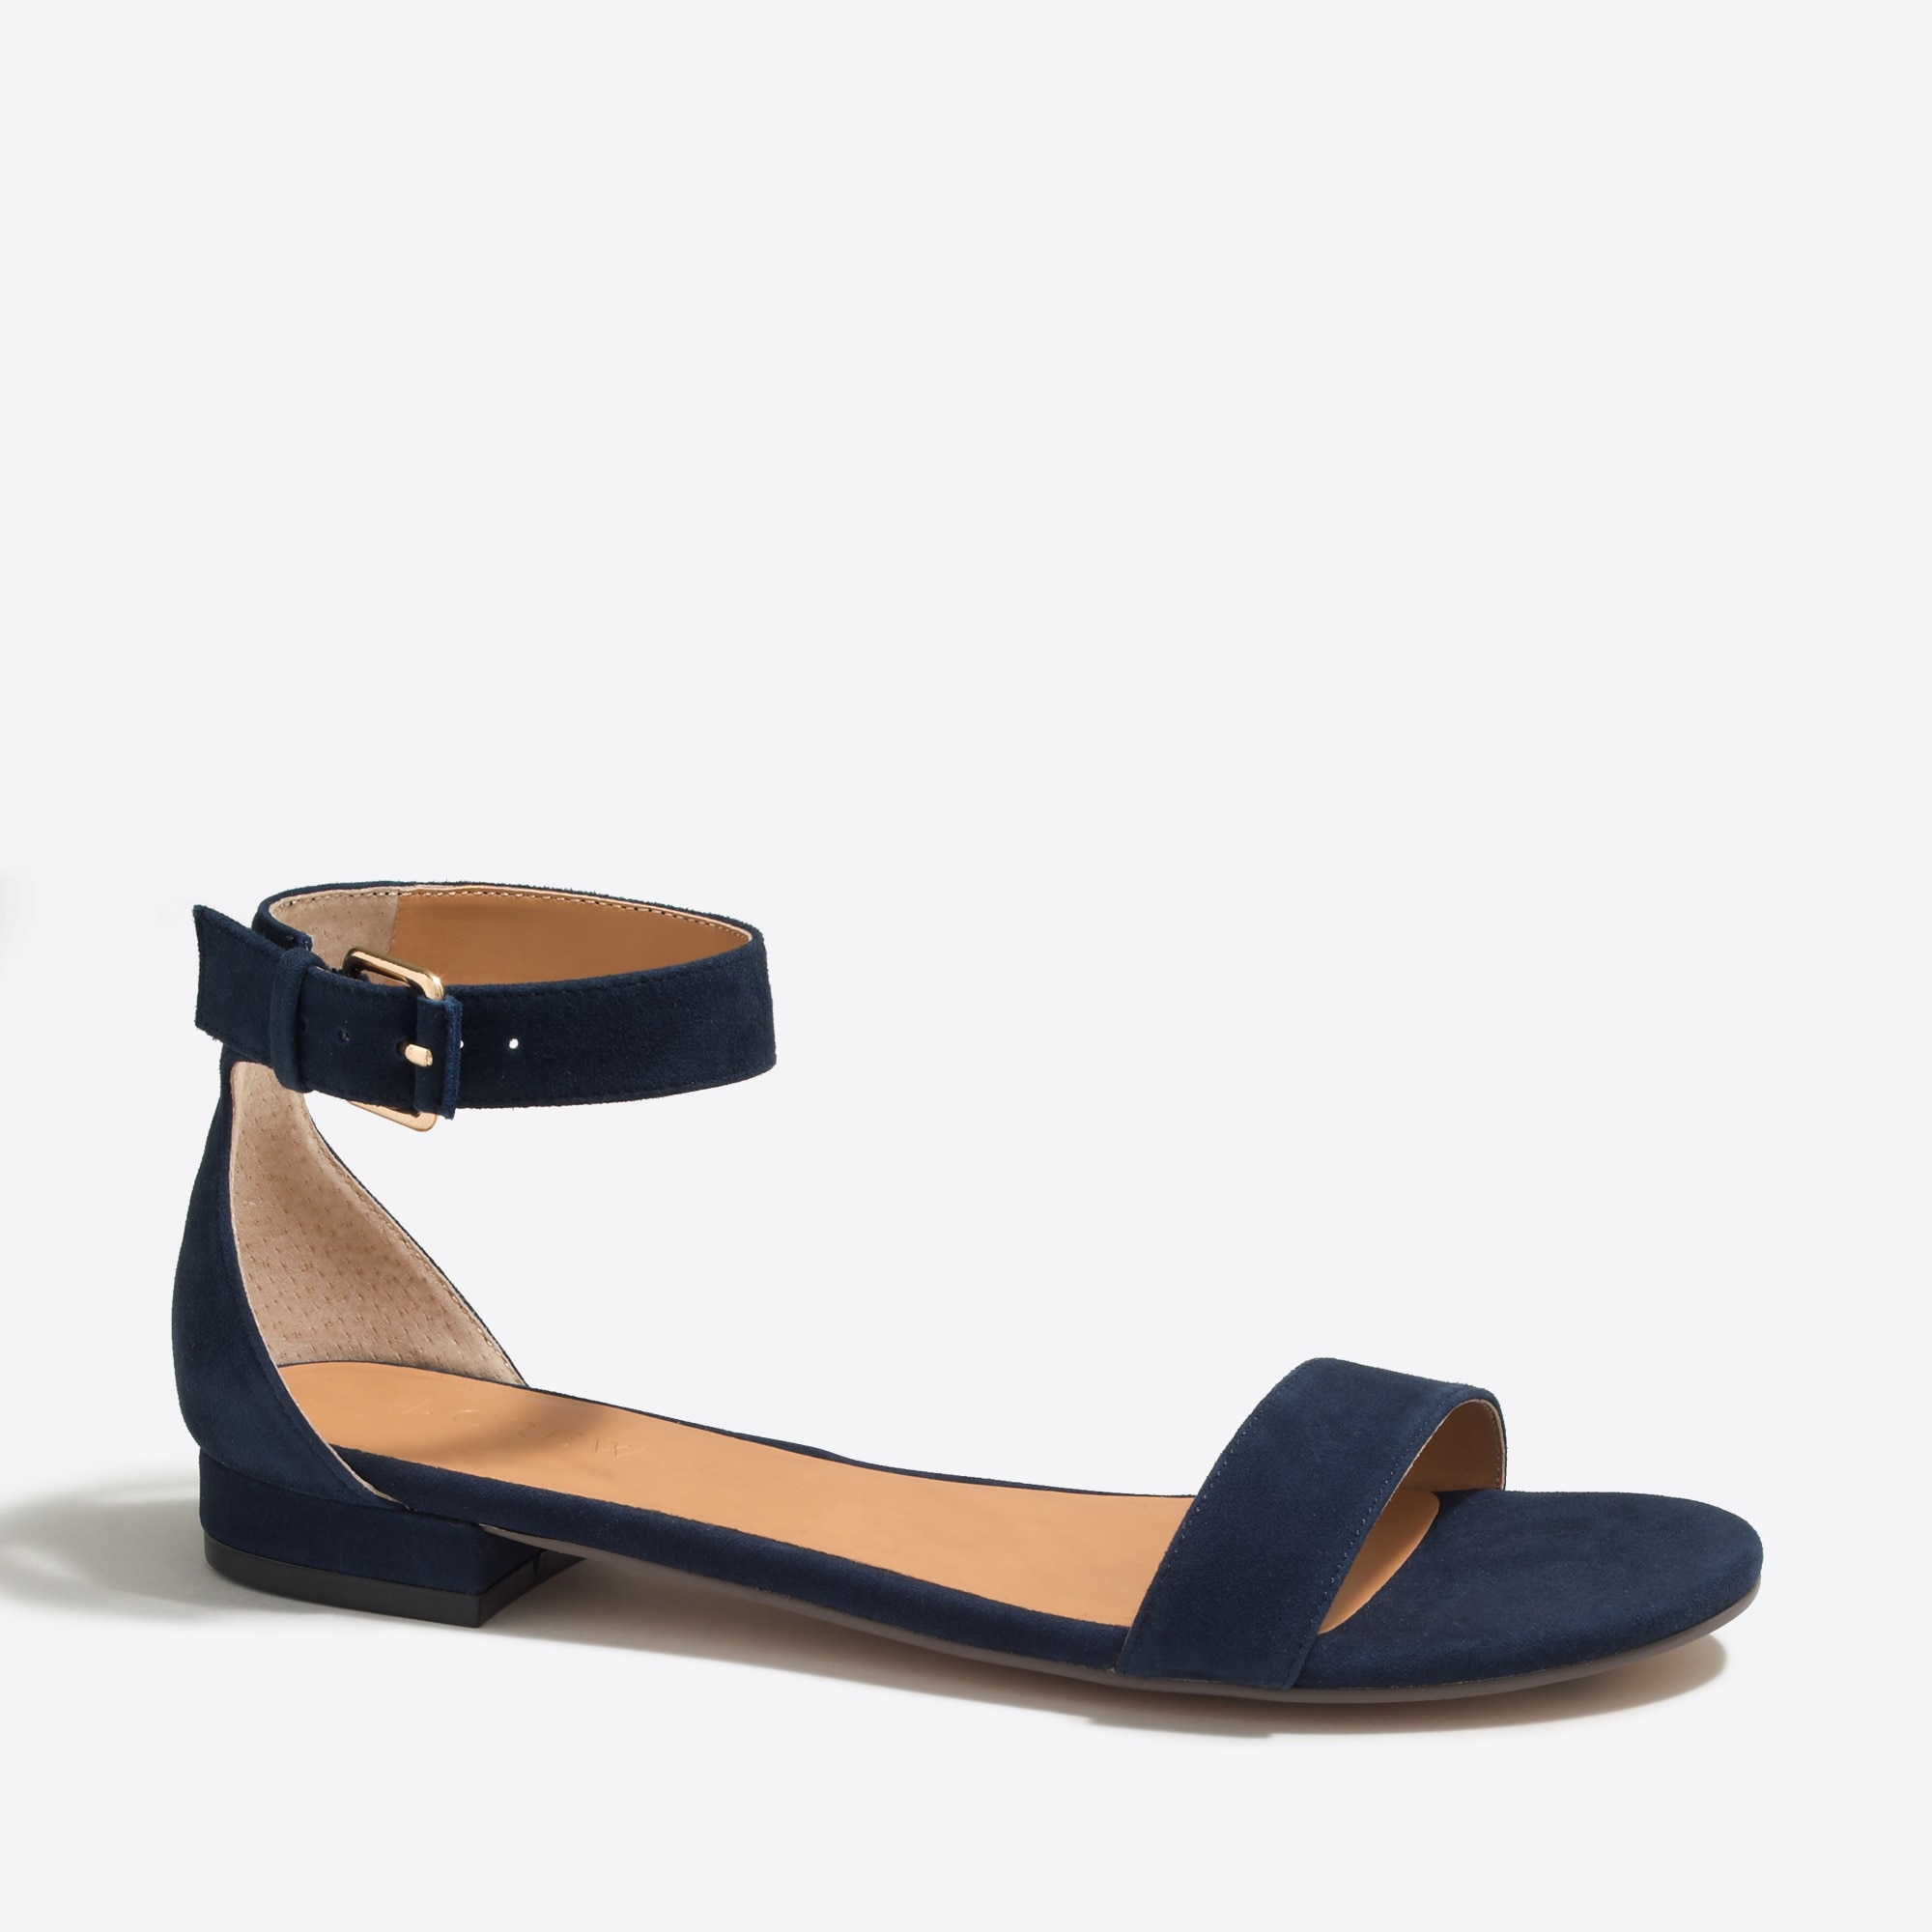 hadley suede ankle-strap sandals : factorywomen sizes 5 & 12 shoes